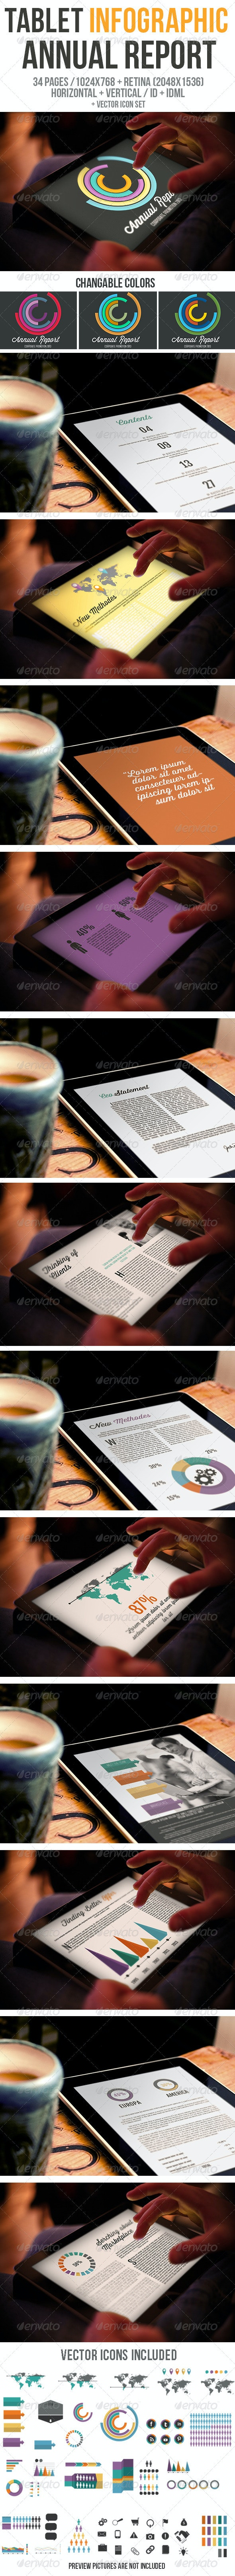 iPad & Tablet Infographic Annual Report